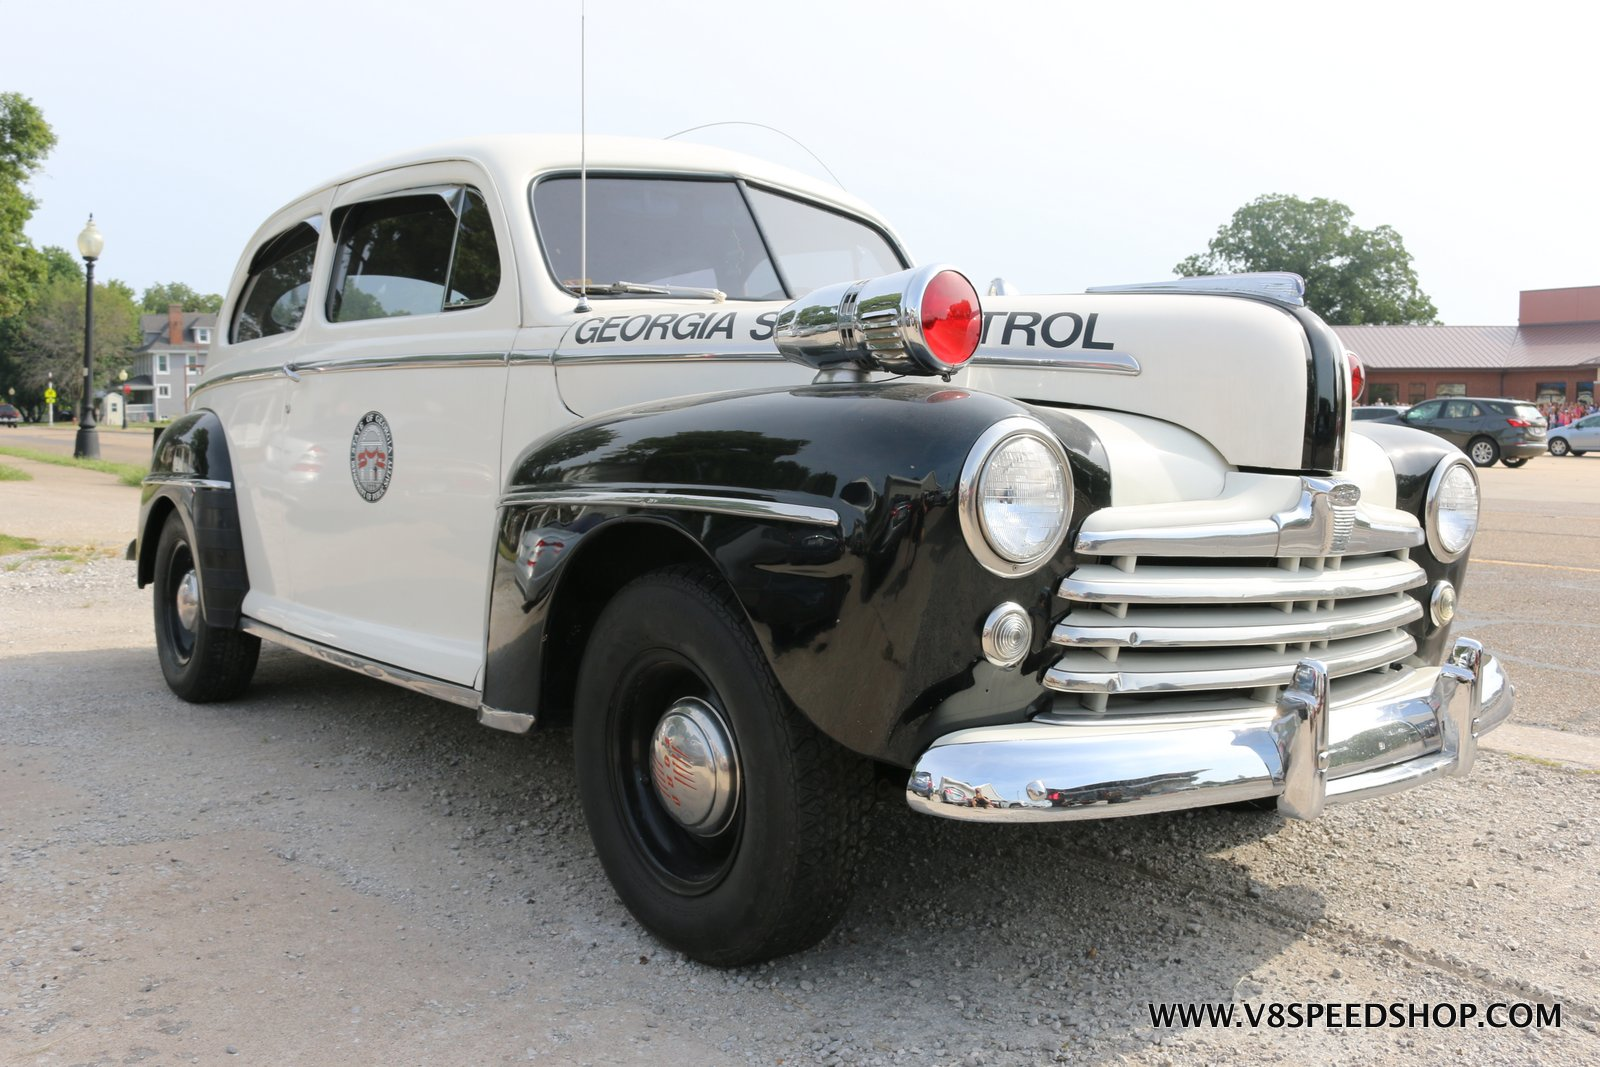 1948 Ford Police Car Repairs at V8 Speed and Resto Shop Photo Gallery